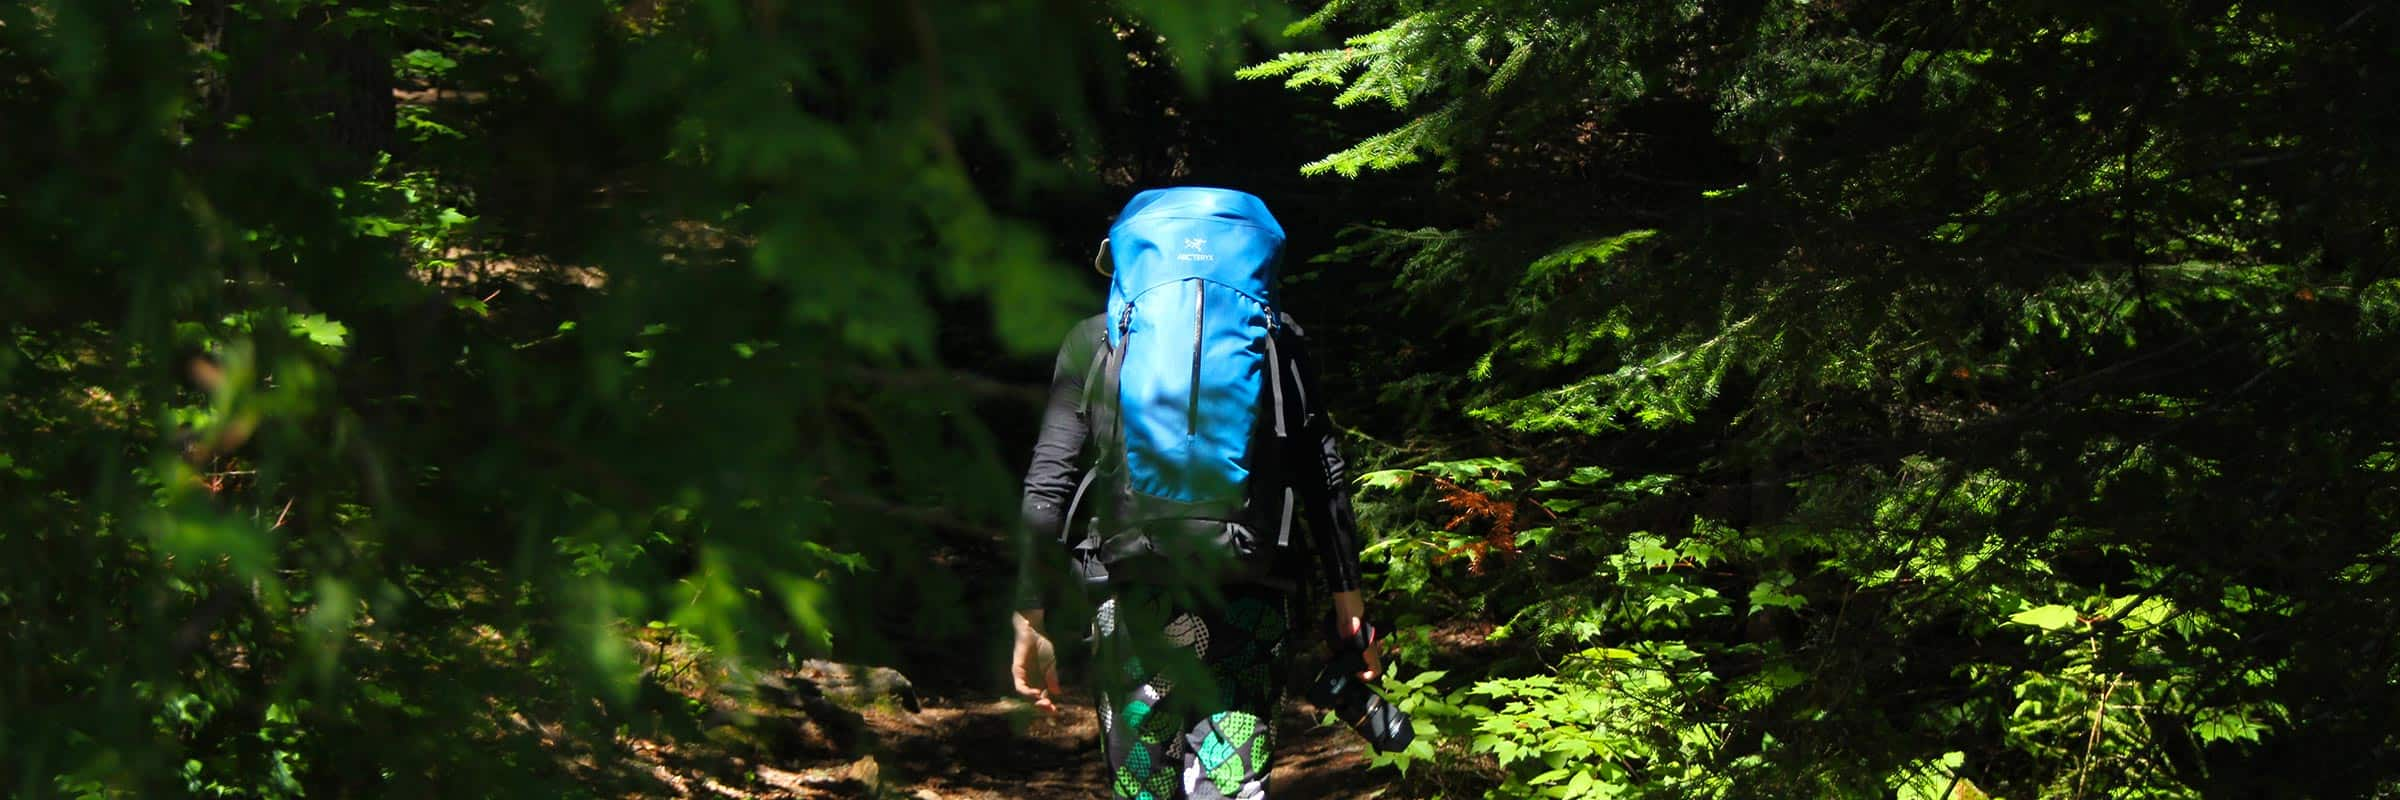 Top Backpacks for Multi-Day Hikes